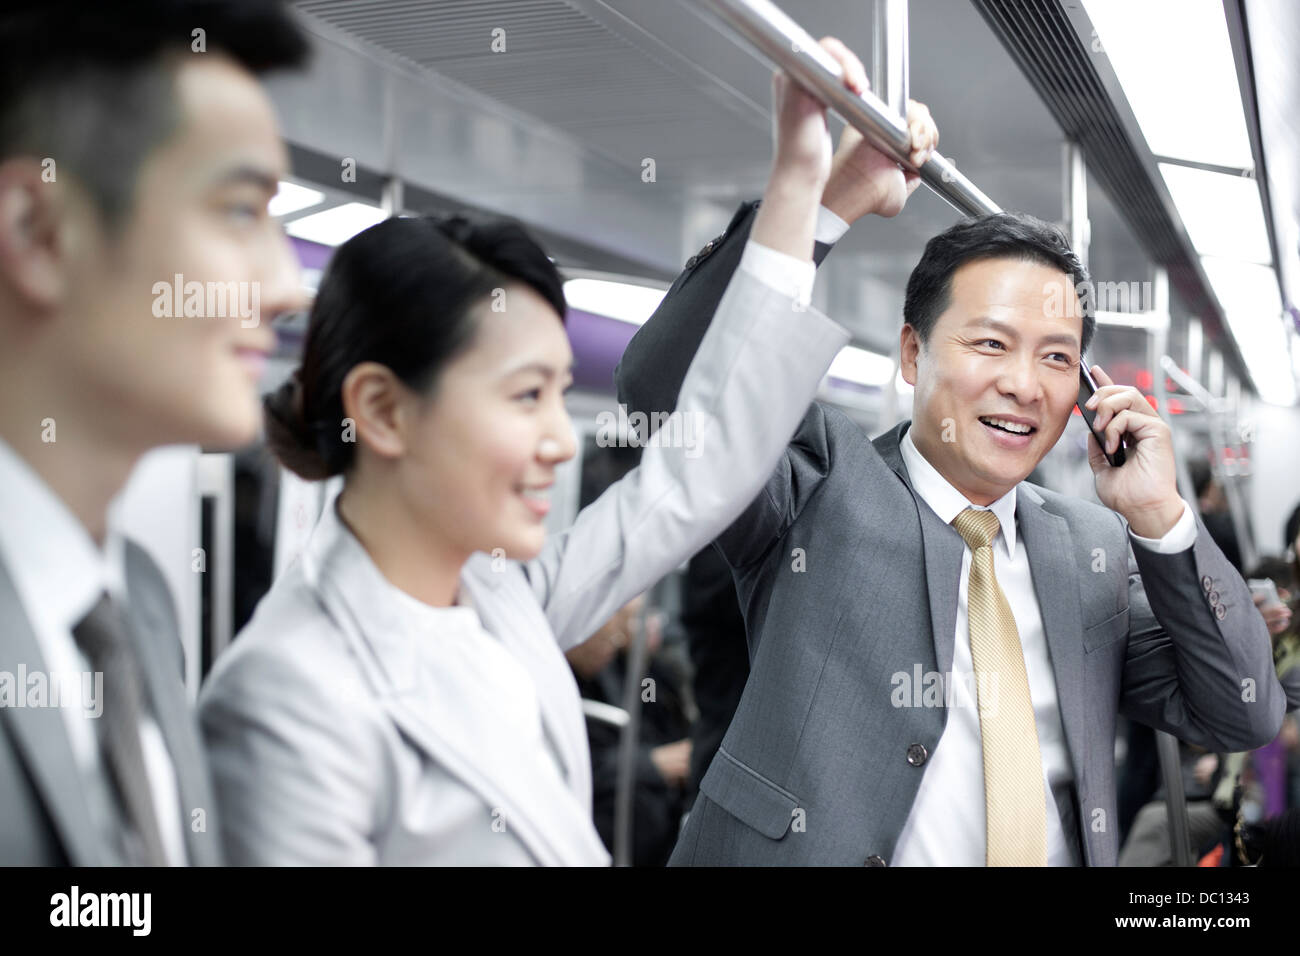 Cheerful business persons in subway train - Stock Image